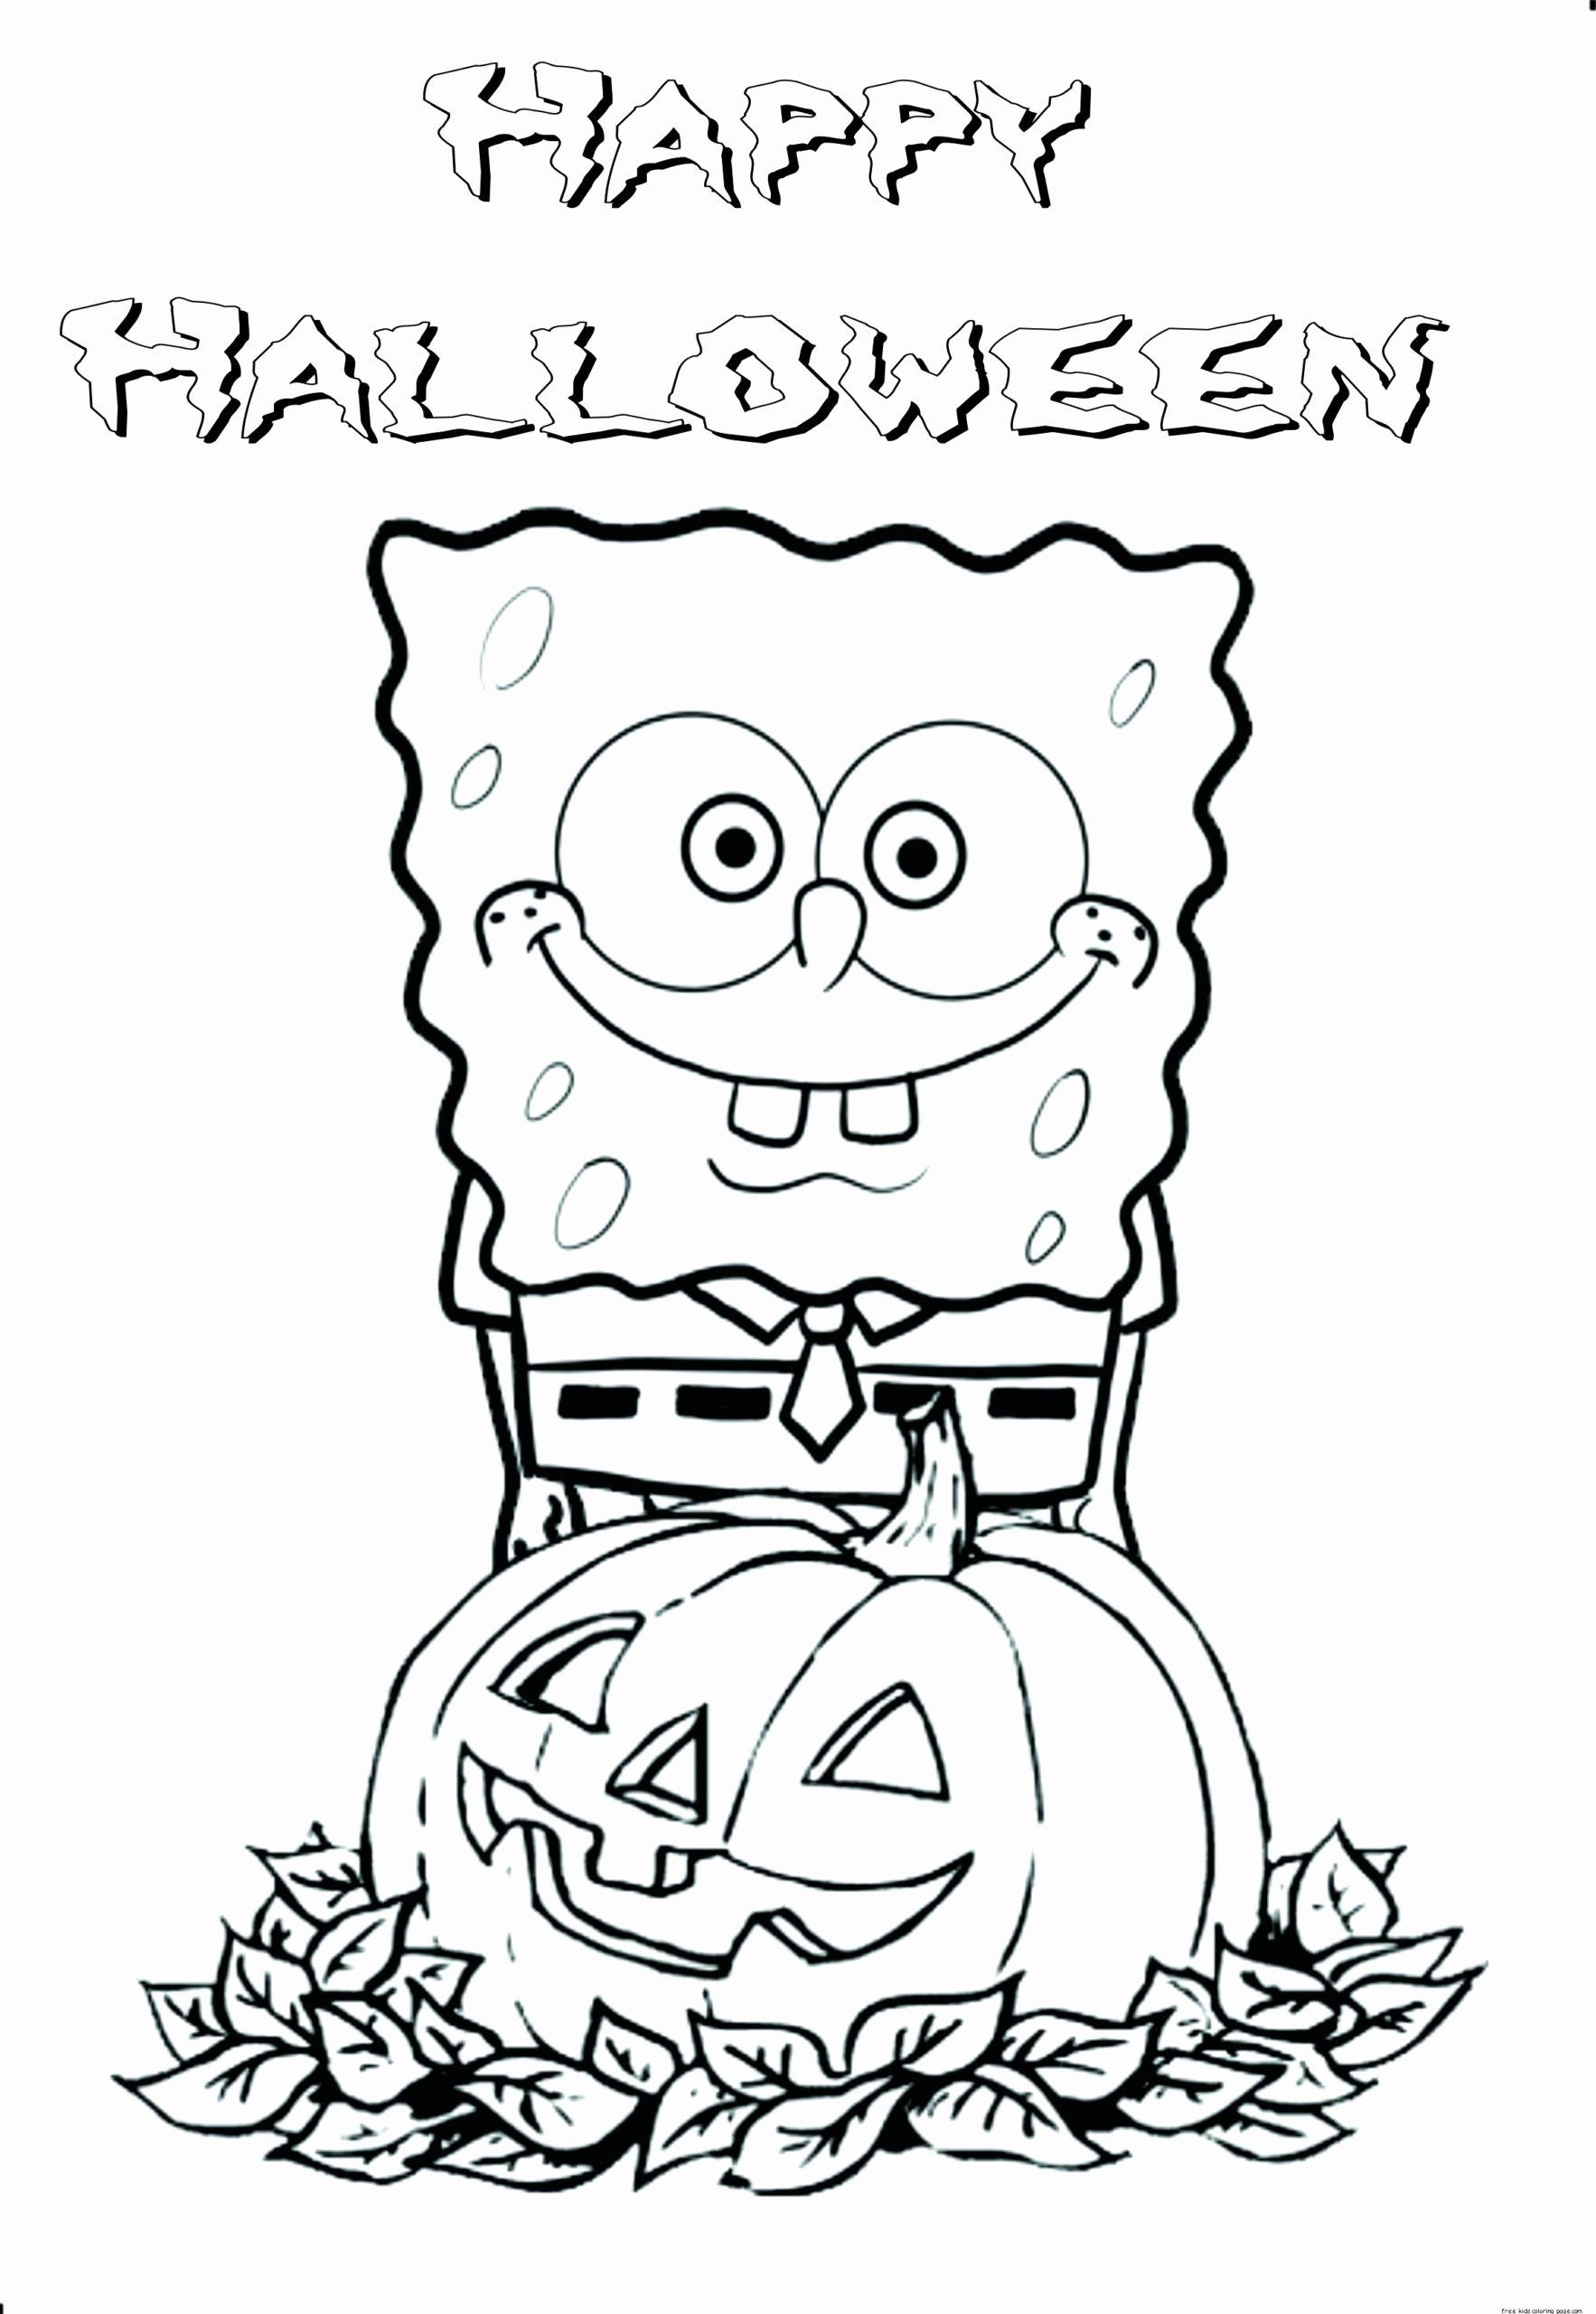 Free Halloween Coloring Sheets Best Of Coloring Pages Coloring Book Amazing Halloween Halloween Coloring Pages Spongebob Coloring Free Halloween Coloring Pages